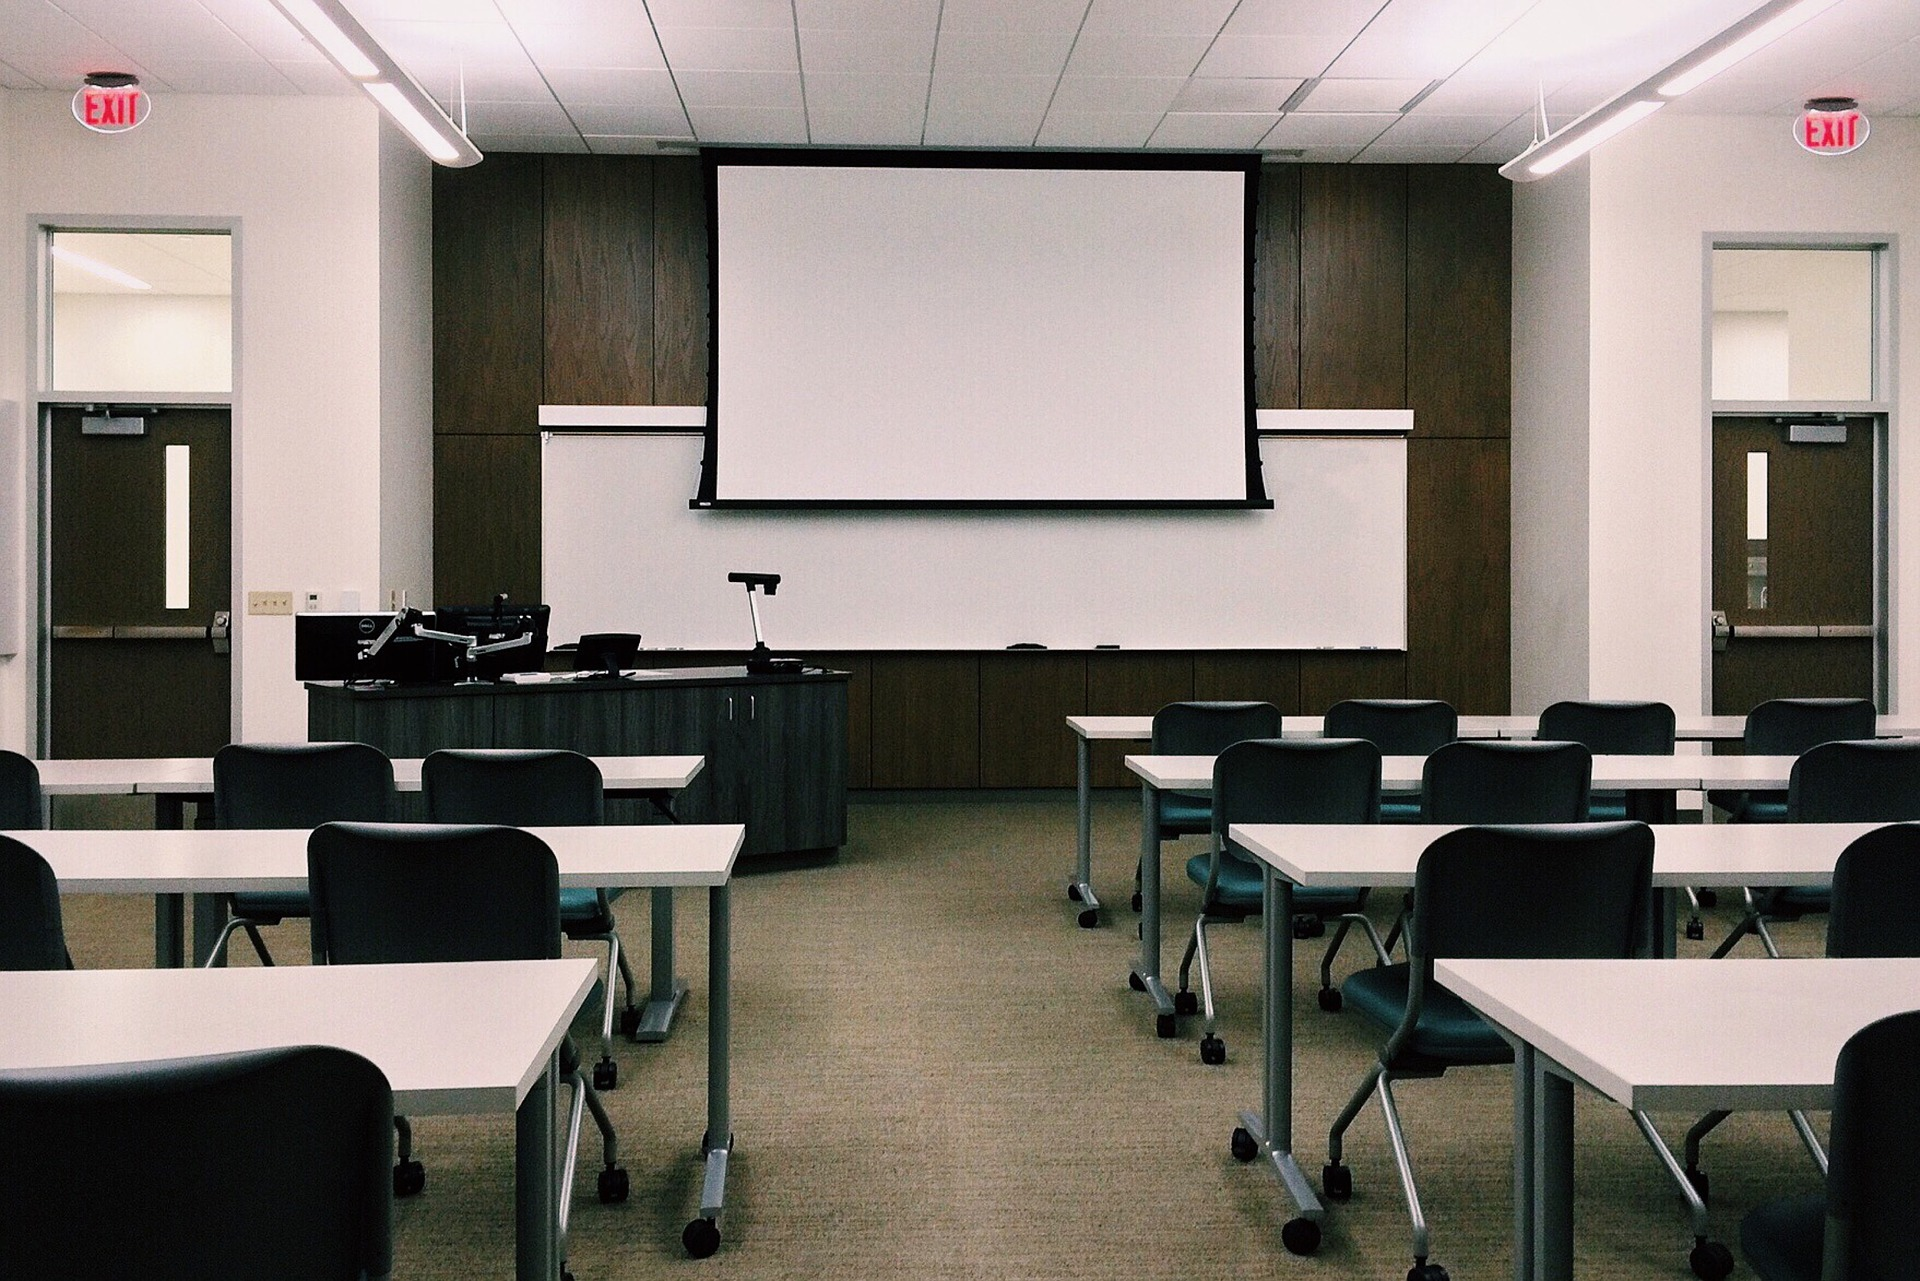 Image of an emtpy classroom